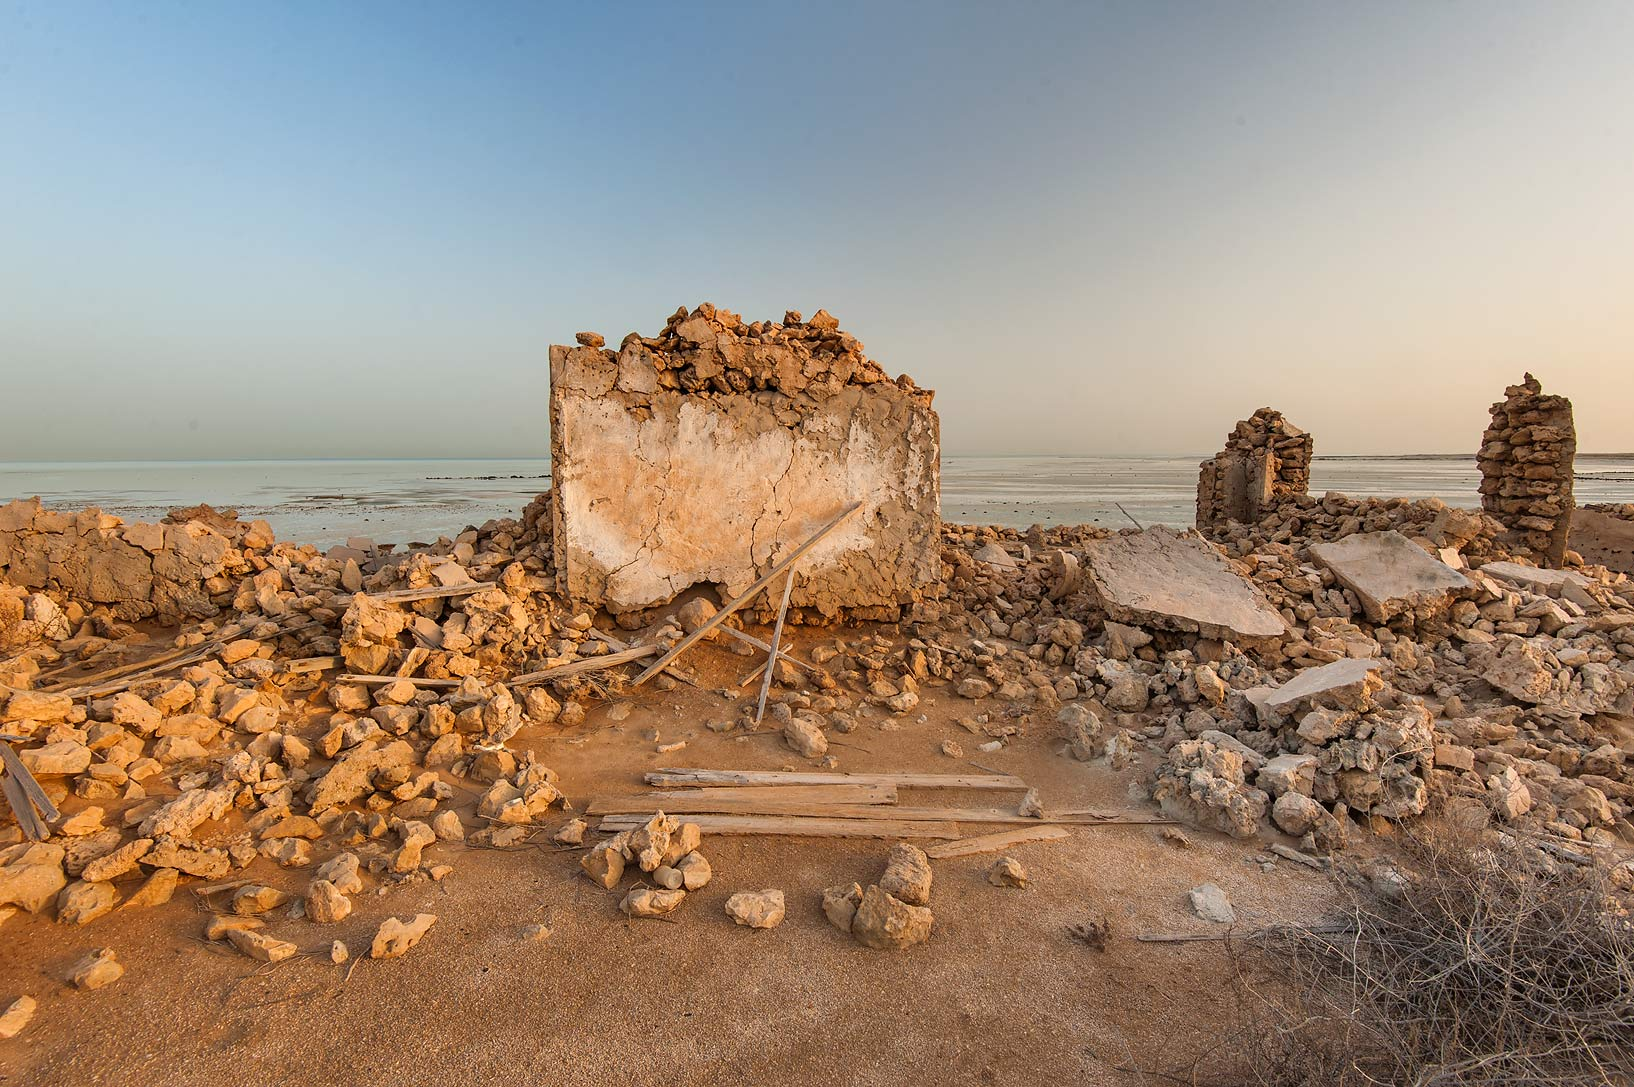 Stone wall at sunrise in a village of Al Jumail (Jumayl) west of Ruwais. Northern Qatar